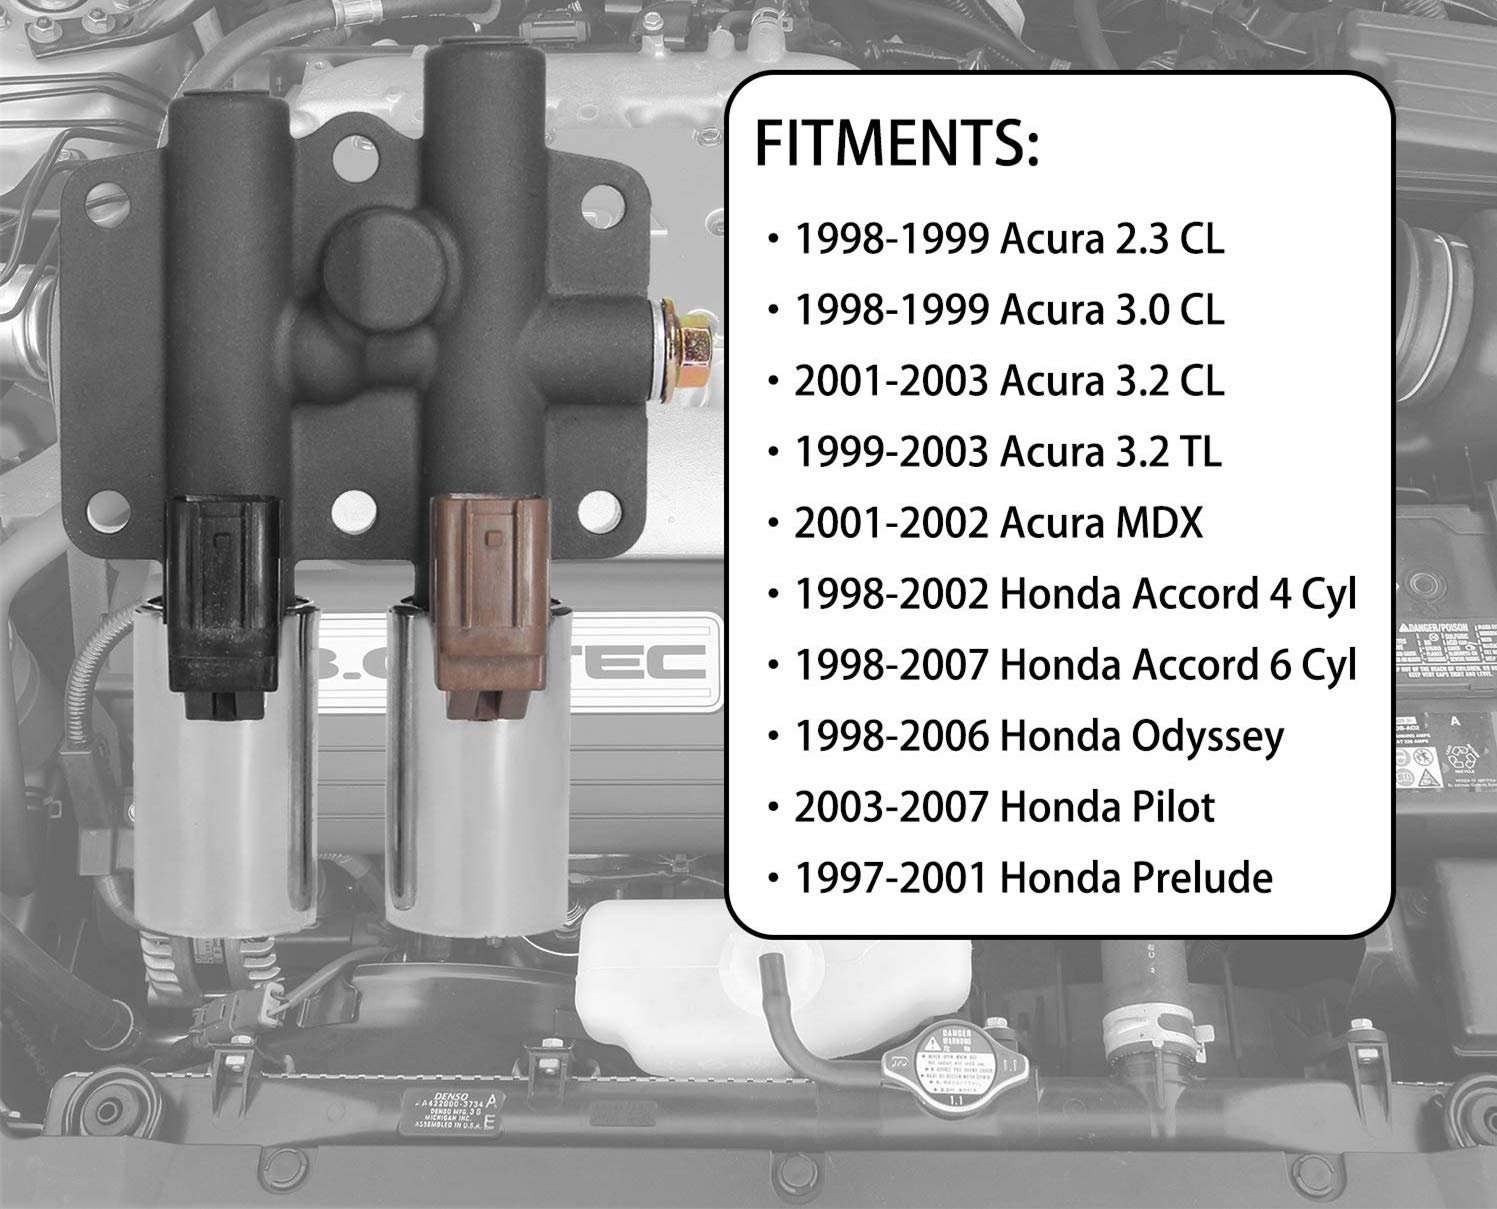 Transmission Dual Linear Solenoid with 1PCS Gasket and 3PCS O-Rings for Honda Accord Odyssey Acura CL TL MDX Pilot Prelude Replace OE# 28250-P6H-024 28250P6H024